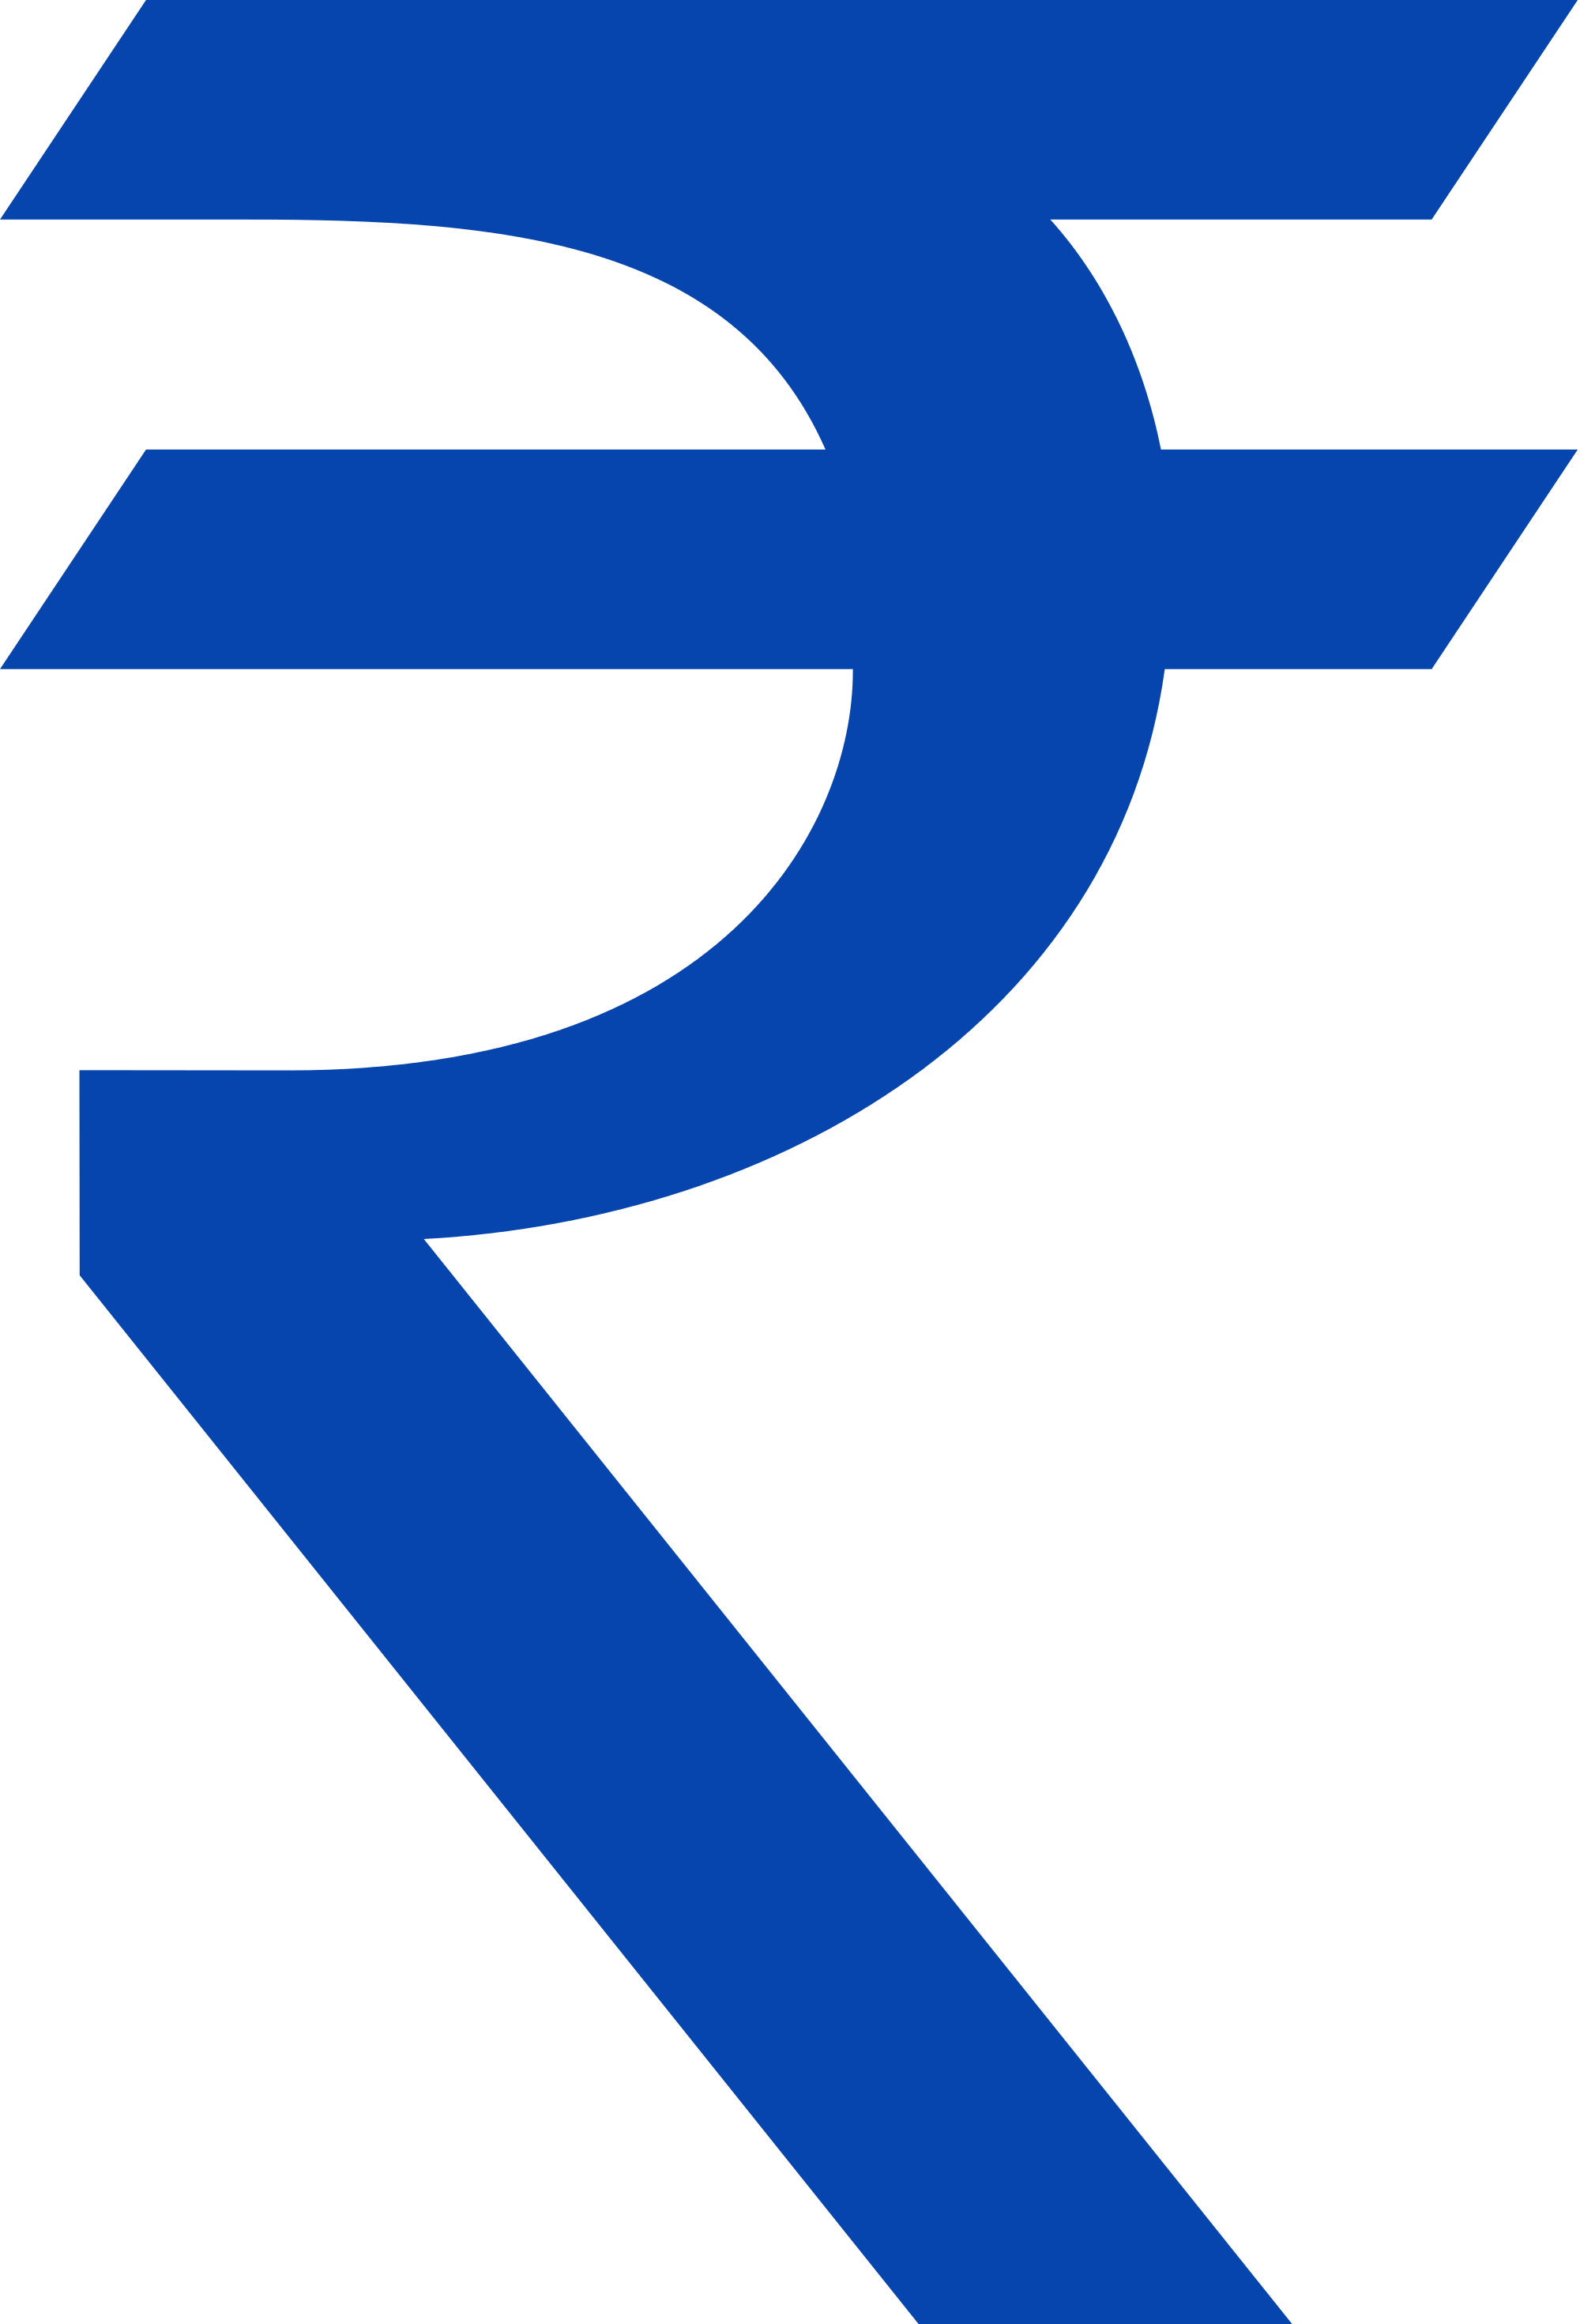 How to enter rupee symbol from dell keyboard image collections download rupee symbol photos hq png image freepngimg download png image rupee symbol photos 389 biocorpaavc biocorpaavc Choice Image